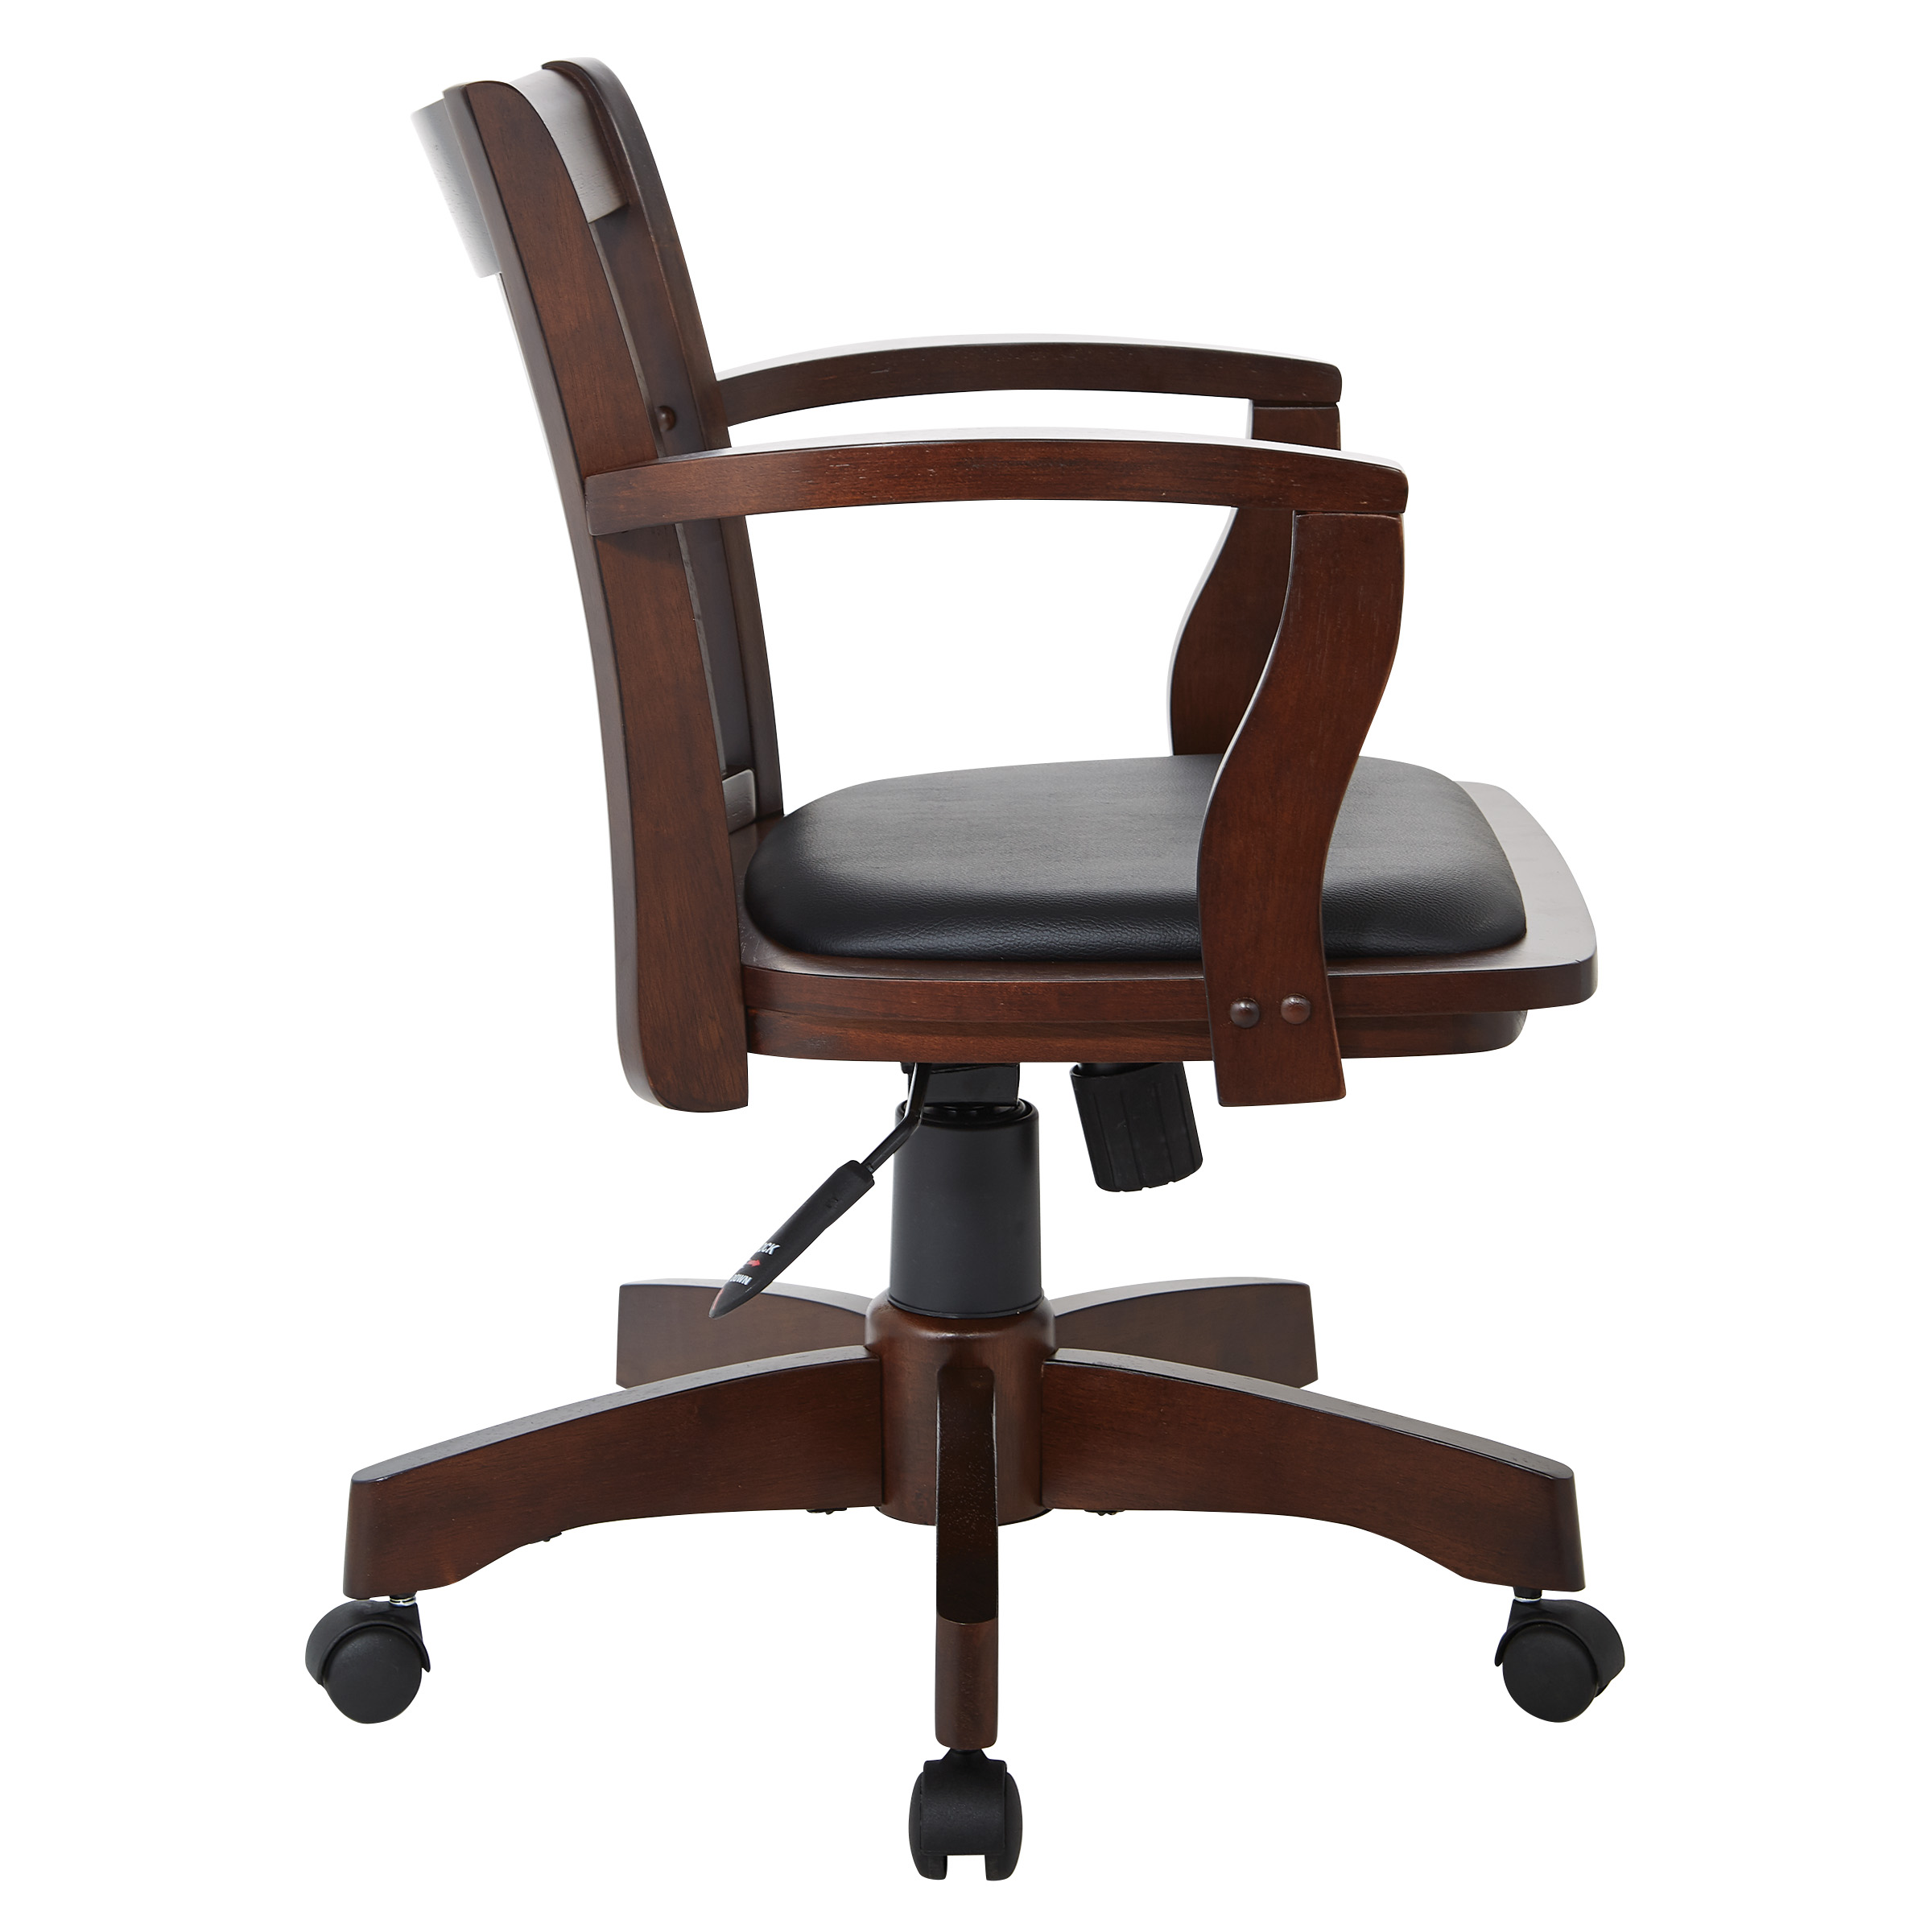 Deluxe Wood Bankers Chair With Vinyl Padded Seat Espresso And Black Vinyl Fabric Walmart Com Walmart Com